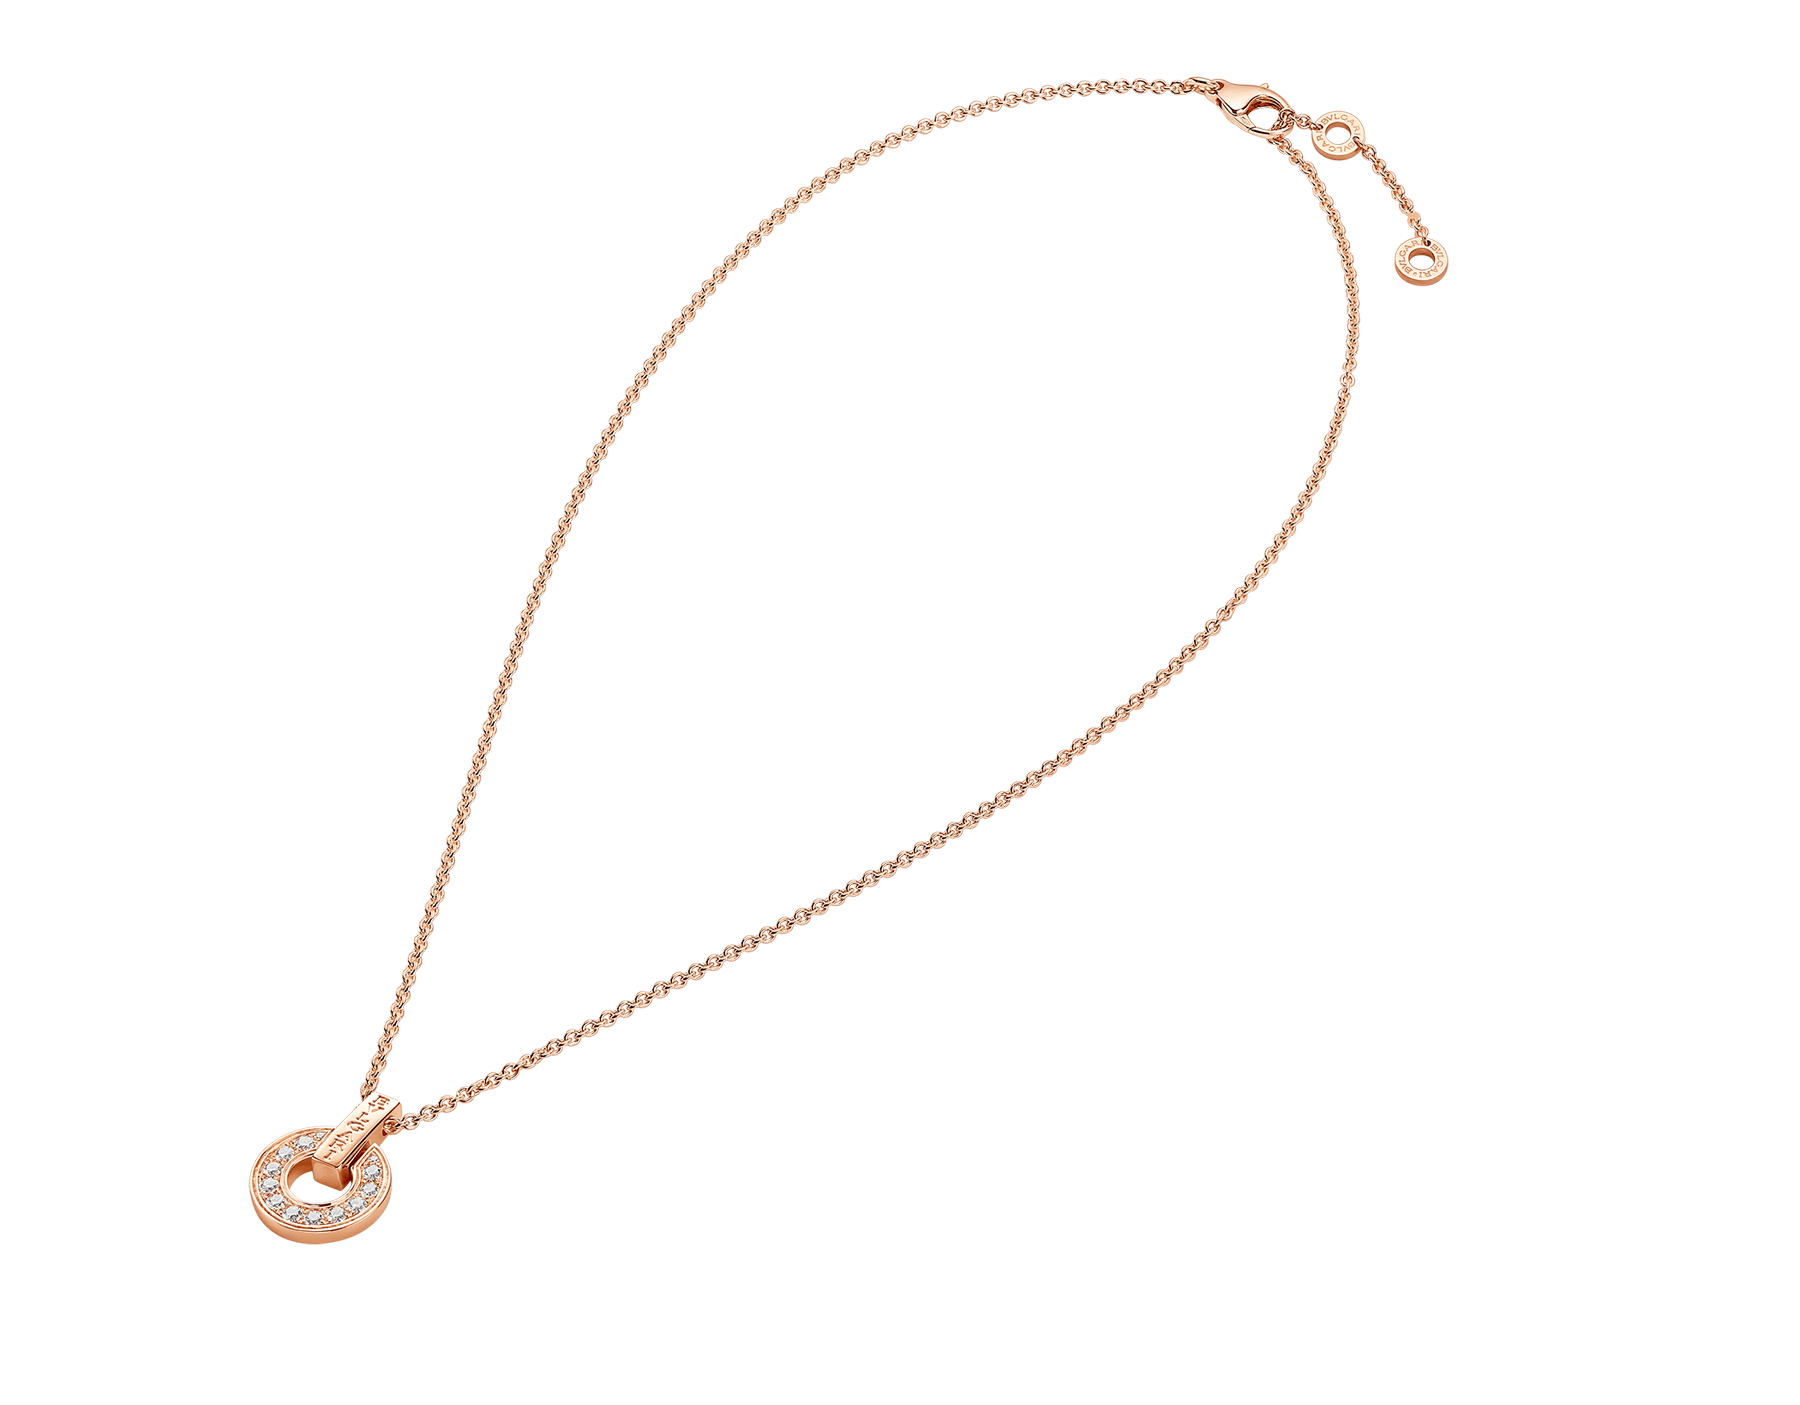 BVLGARI BVLGARI openwork 18 kt rose gold necklace set with full pavé diamonds on the pendant 357312 image 2